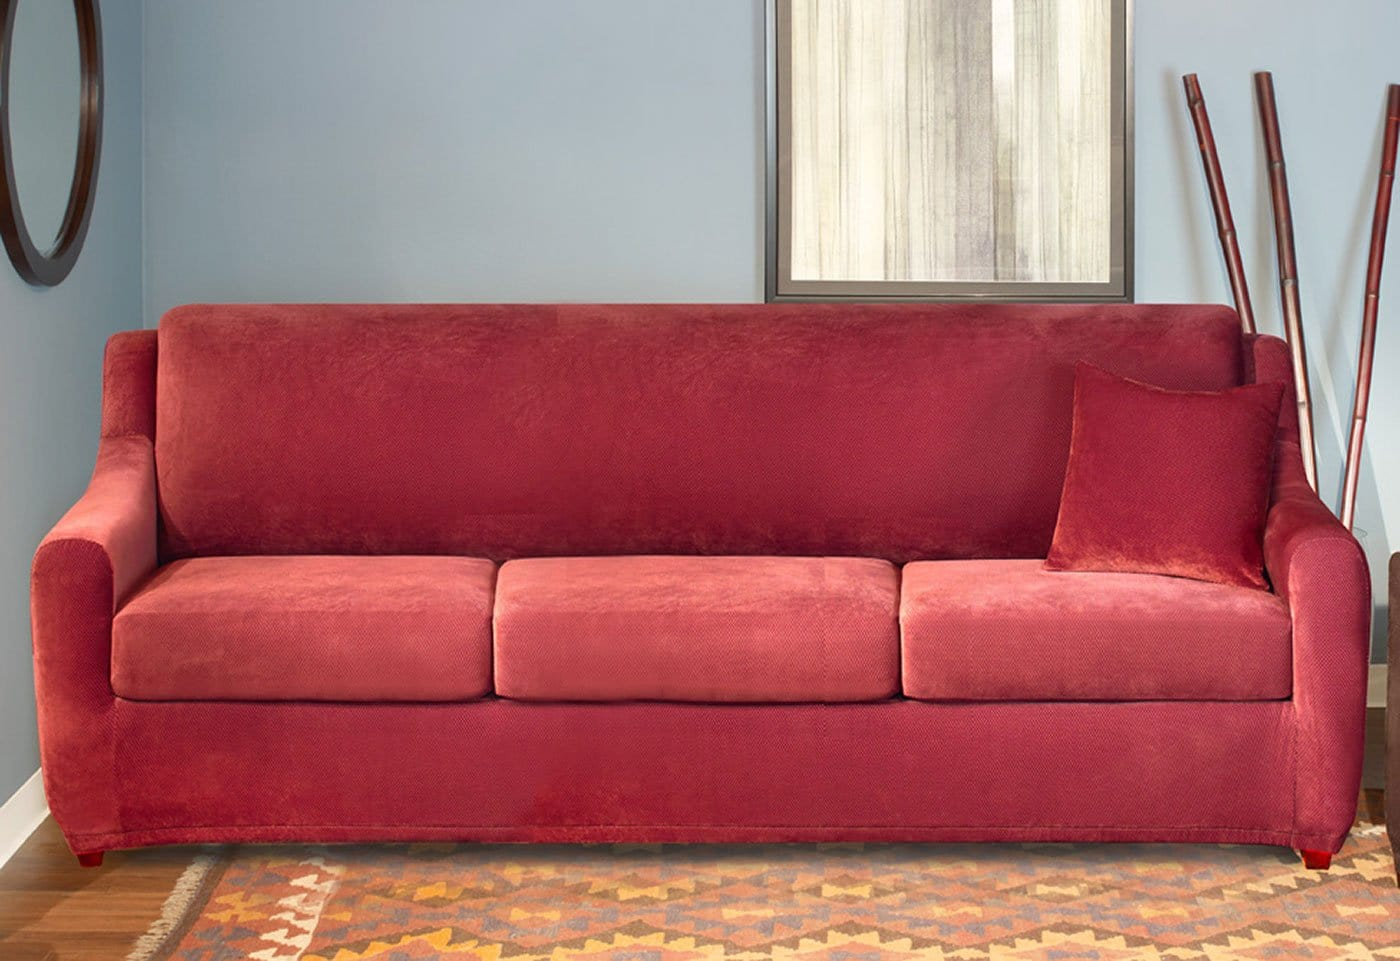 sure fit stretch pearson 3 pc sleeper sofa slipcover full chaise longue bed canada pique four piece seat surefit